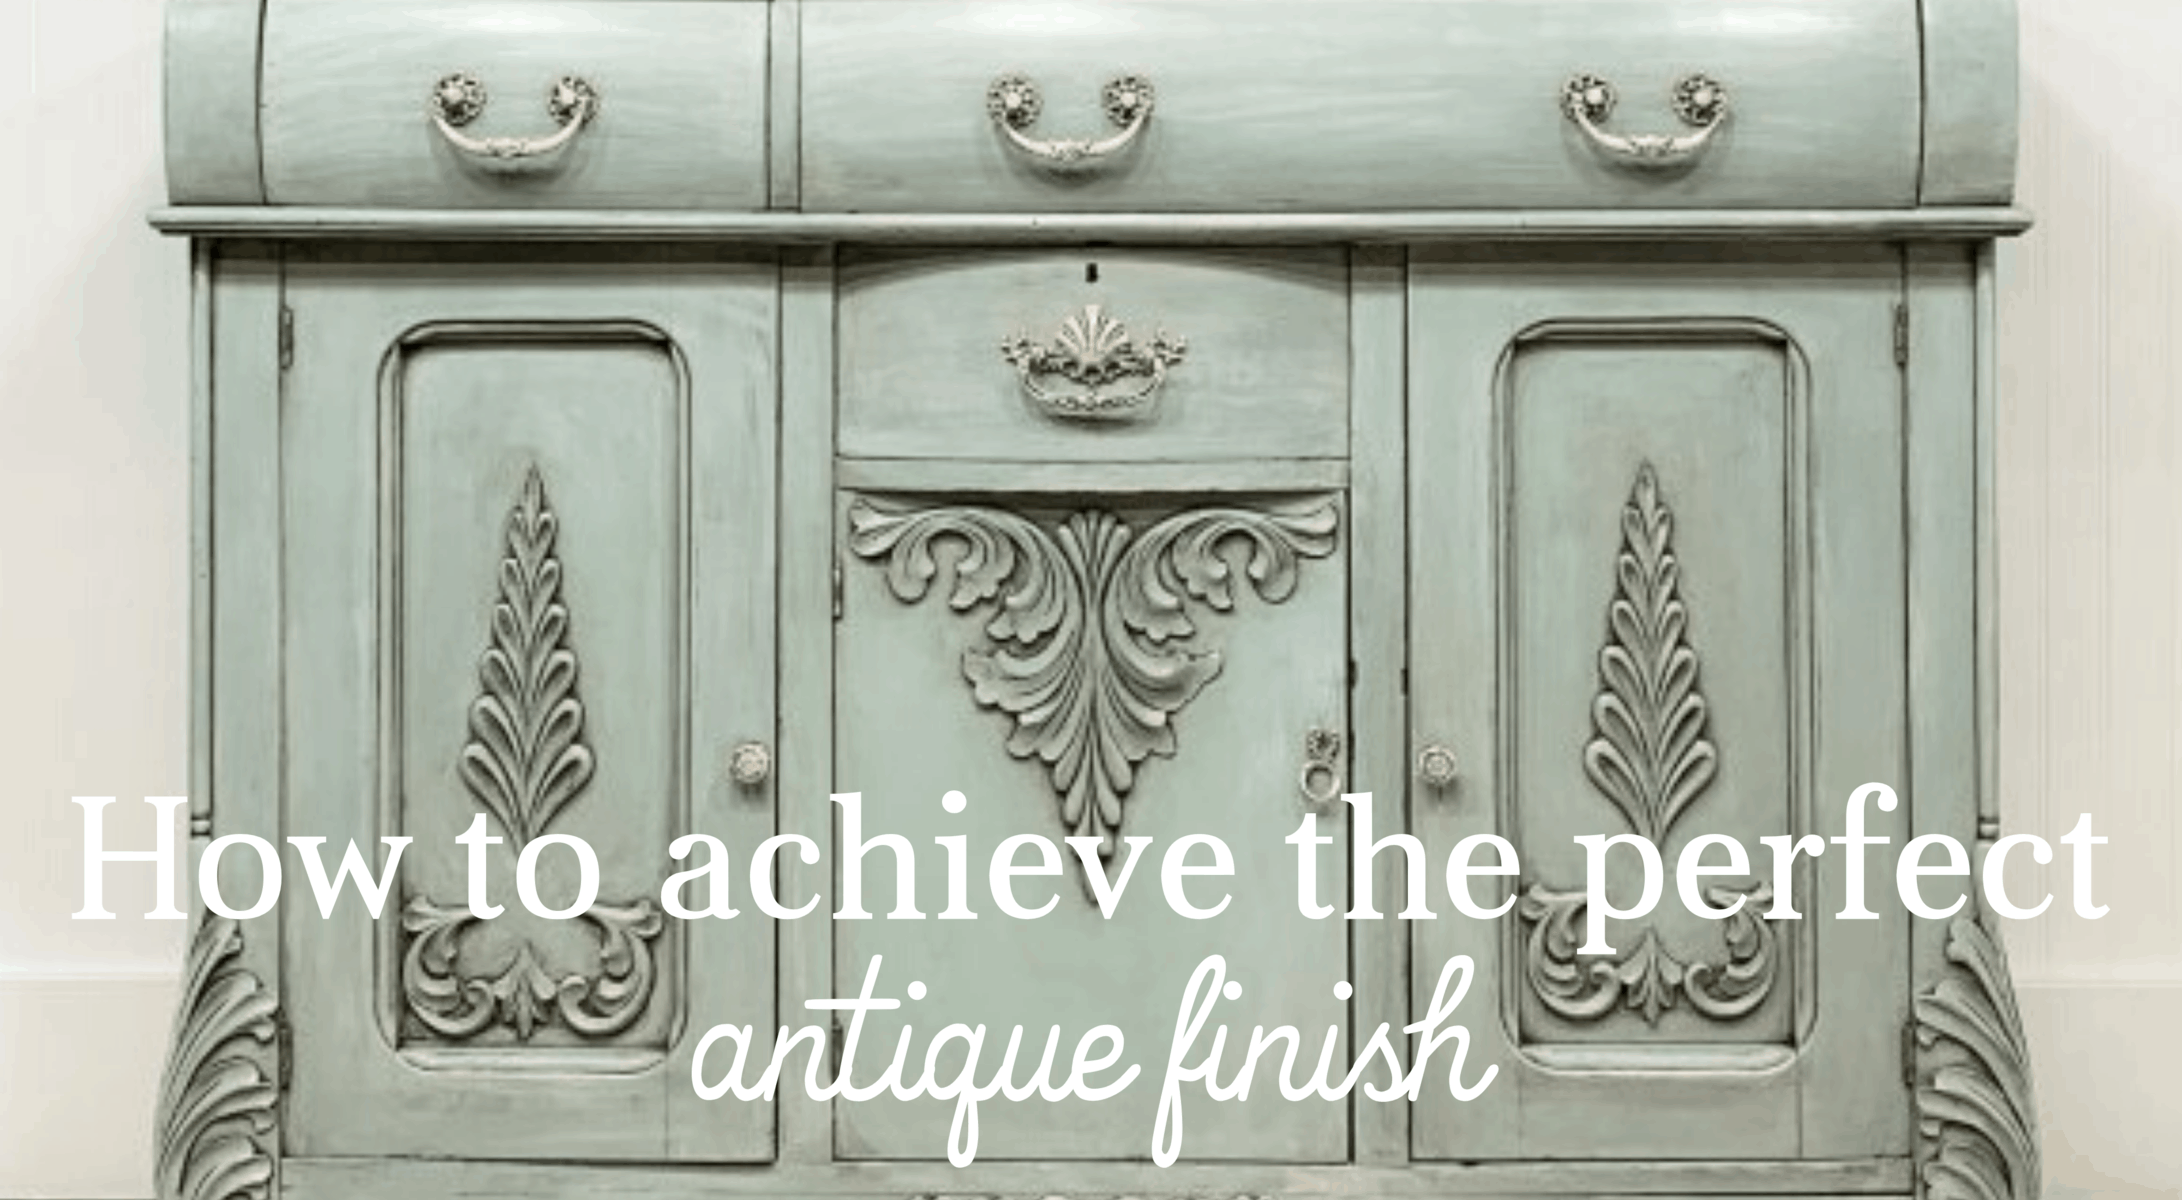 how to achieve the perfect antique finish on furniture - furniture wax vs glaze comparison for diy furniture painting makeovers